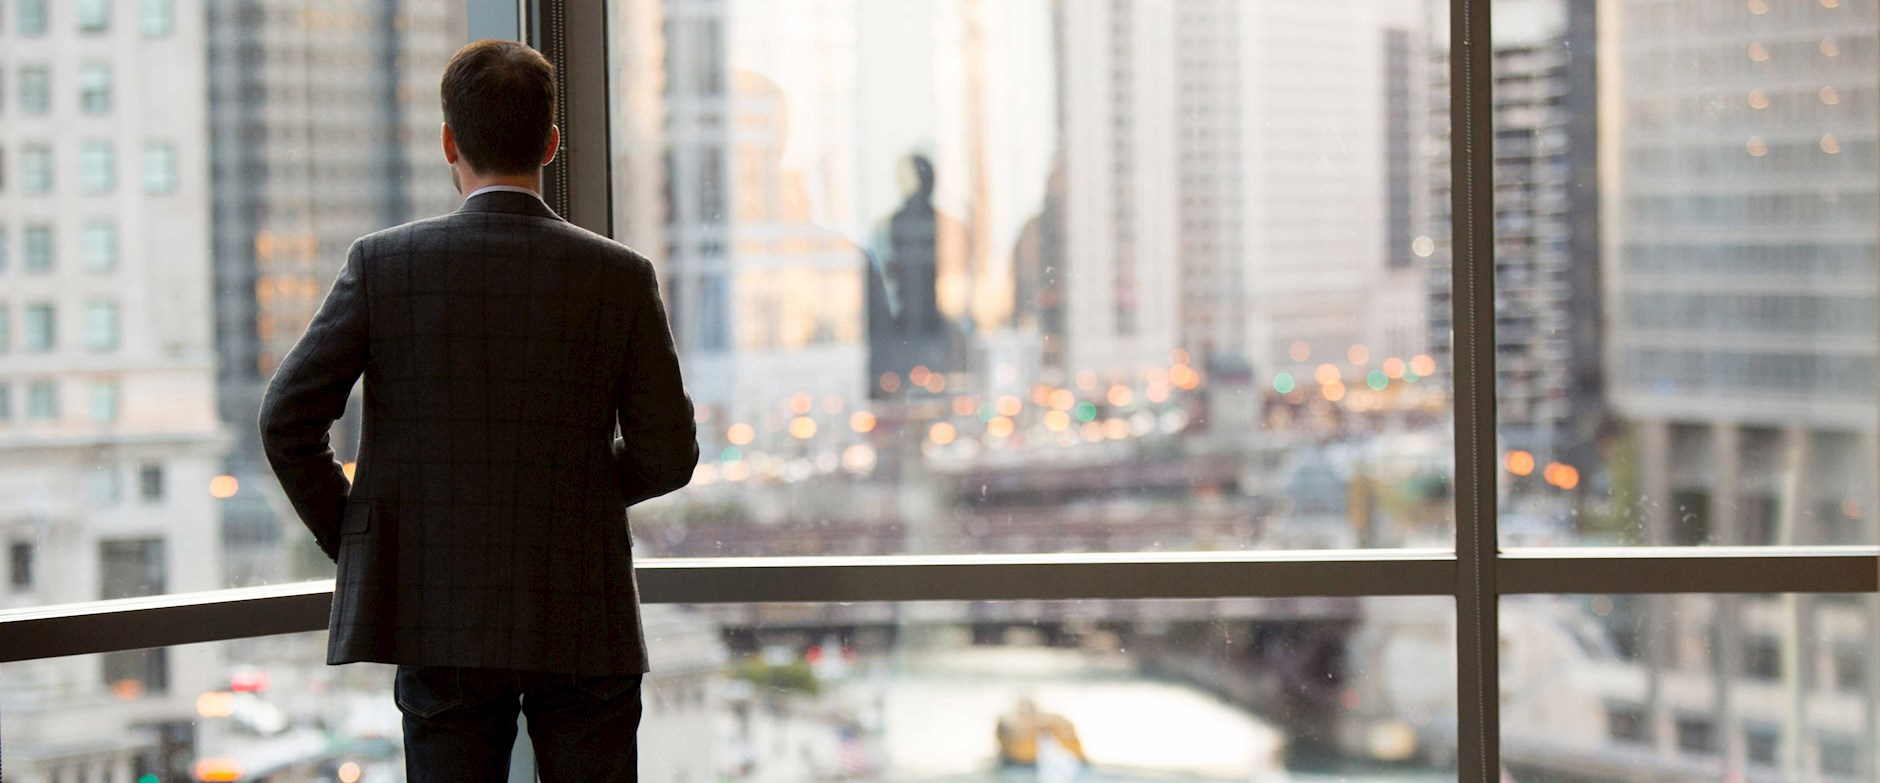 A businessman looking out the window in an urban environment